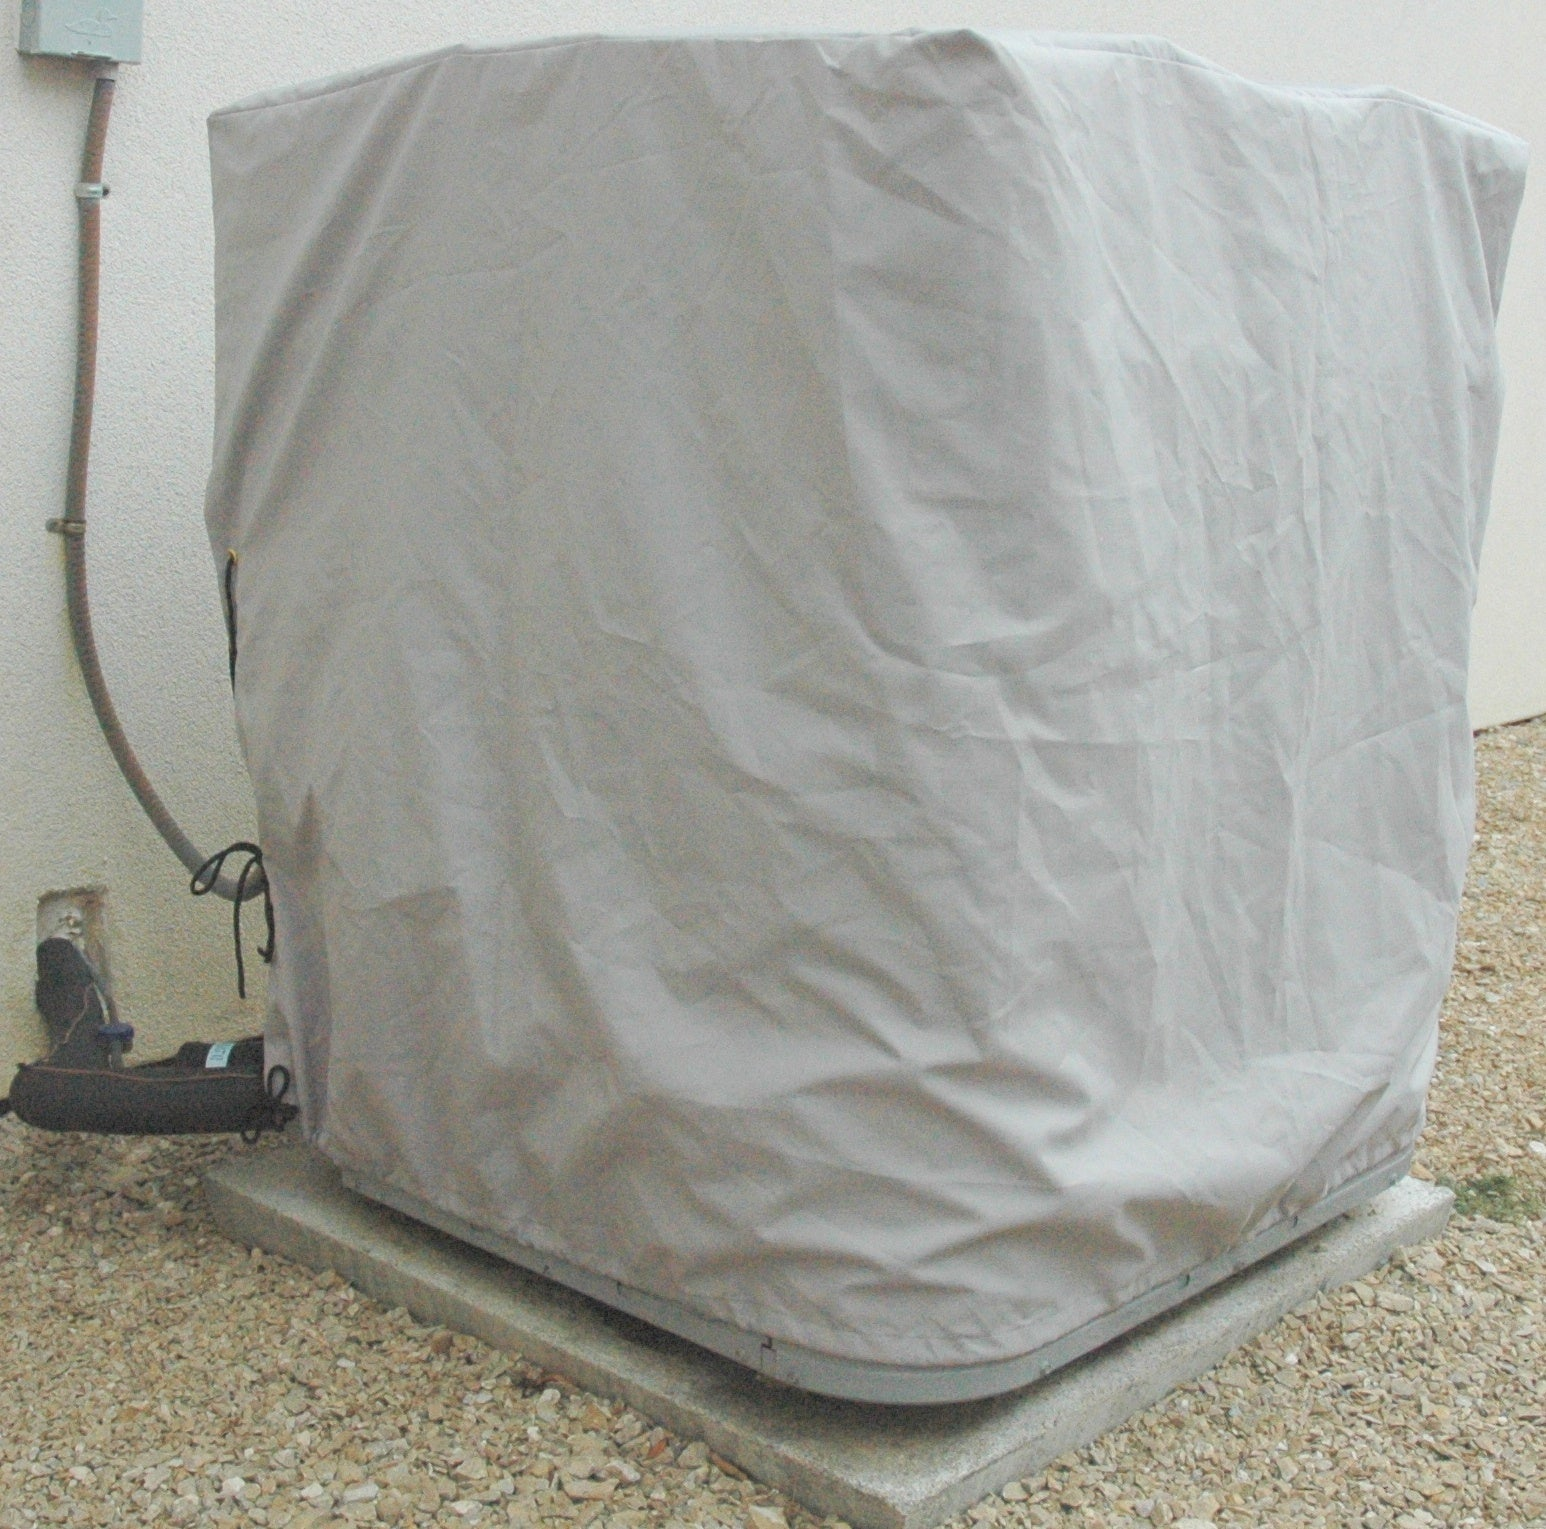 "Evaporative Cooler Cover 34""x34""x36"" Down Draft Pack of 1"